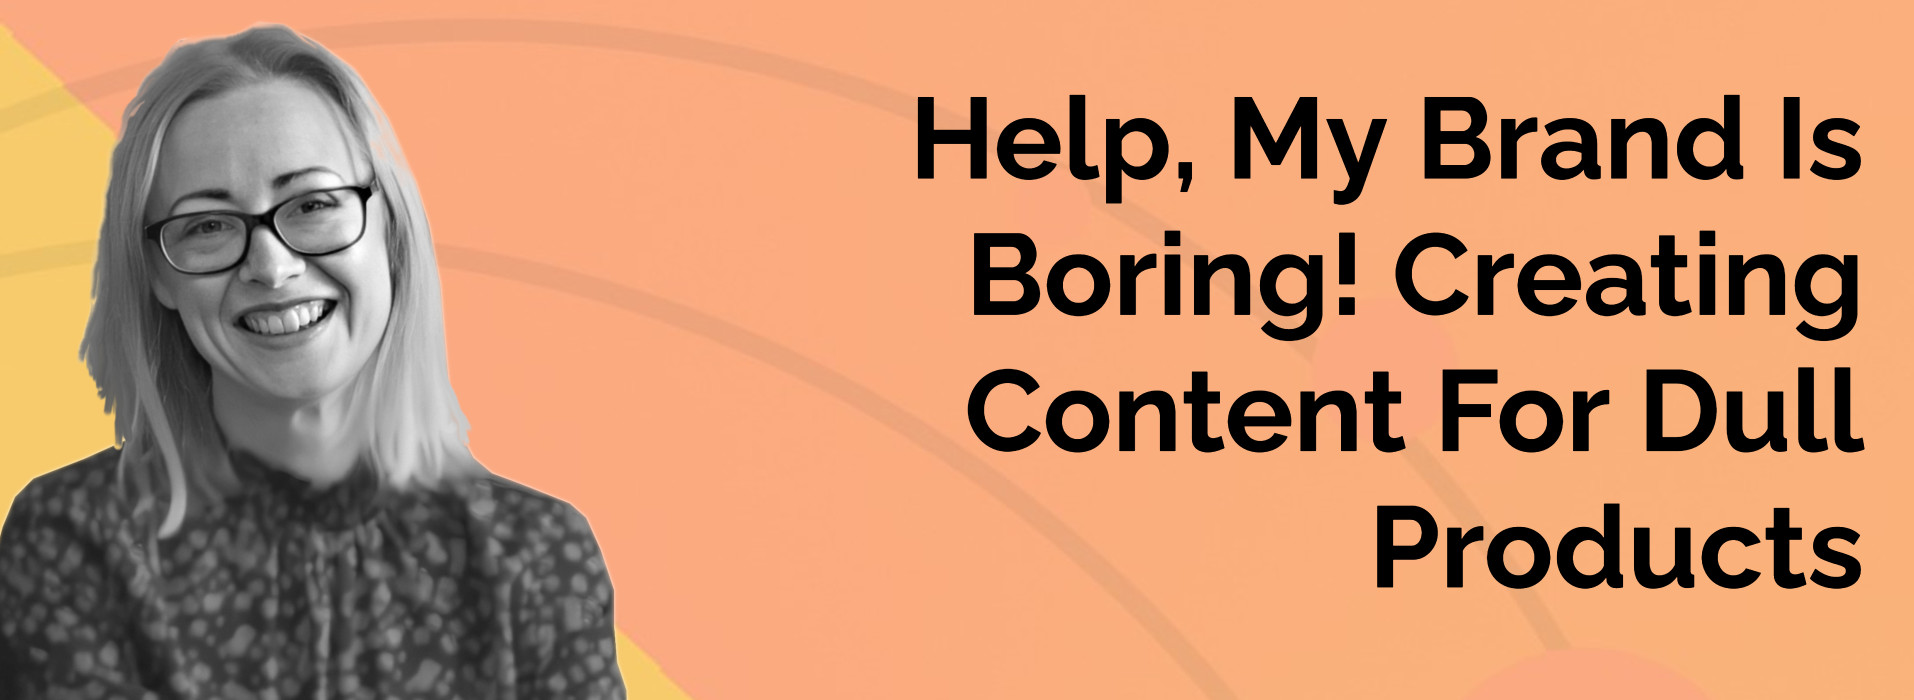 Help My Brand Is Boring - Creating Content For Dull Products